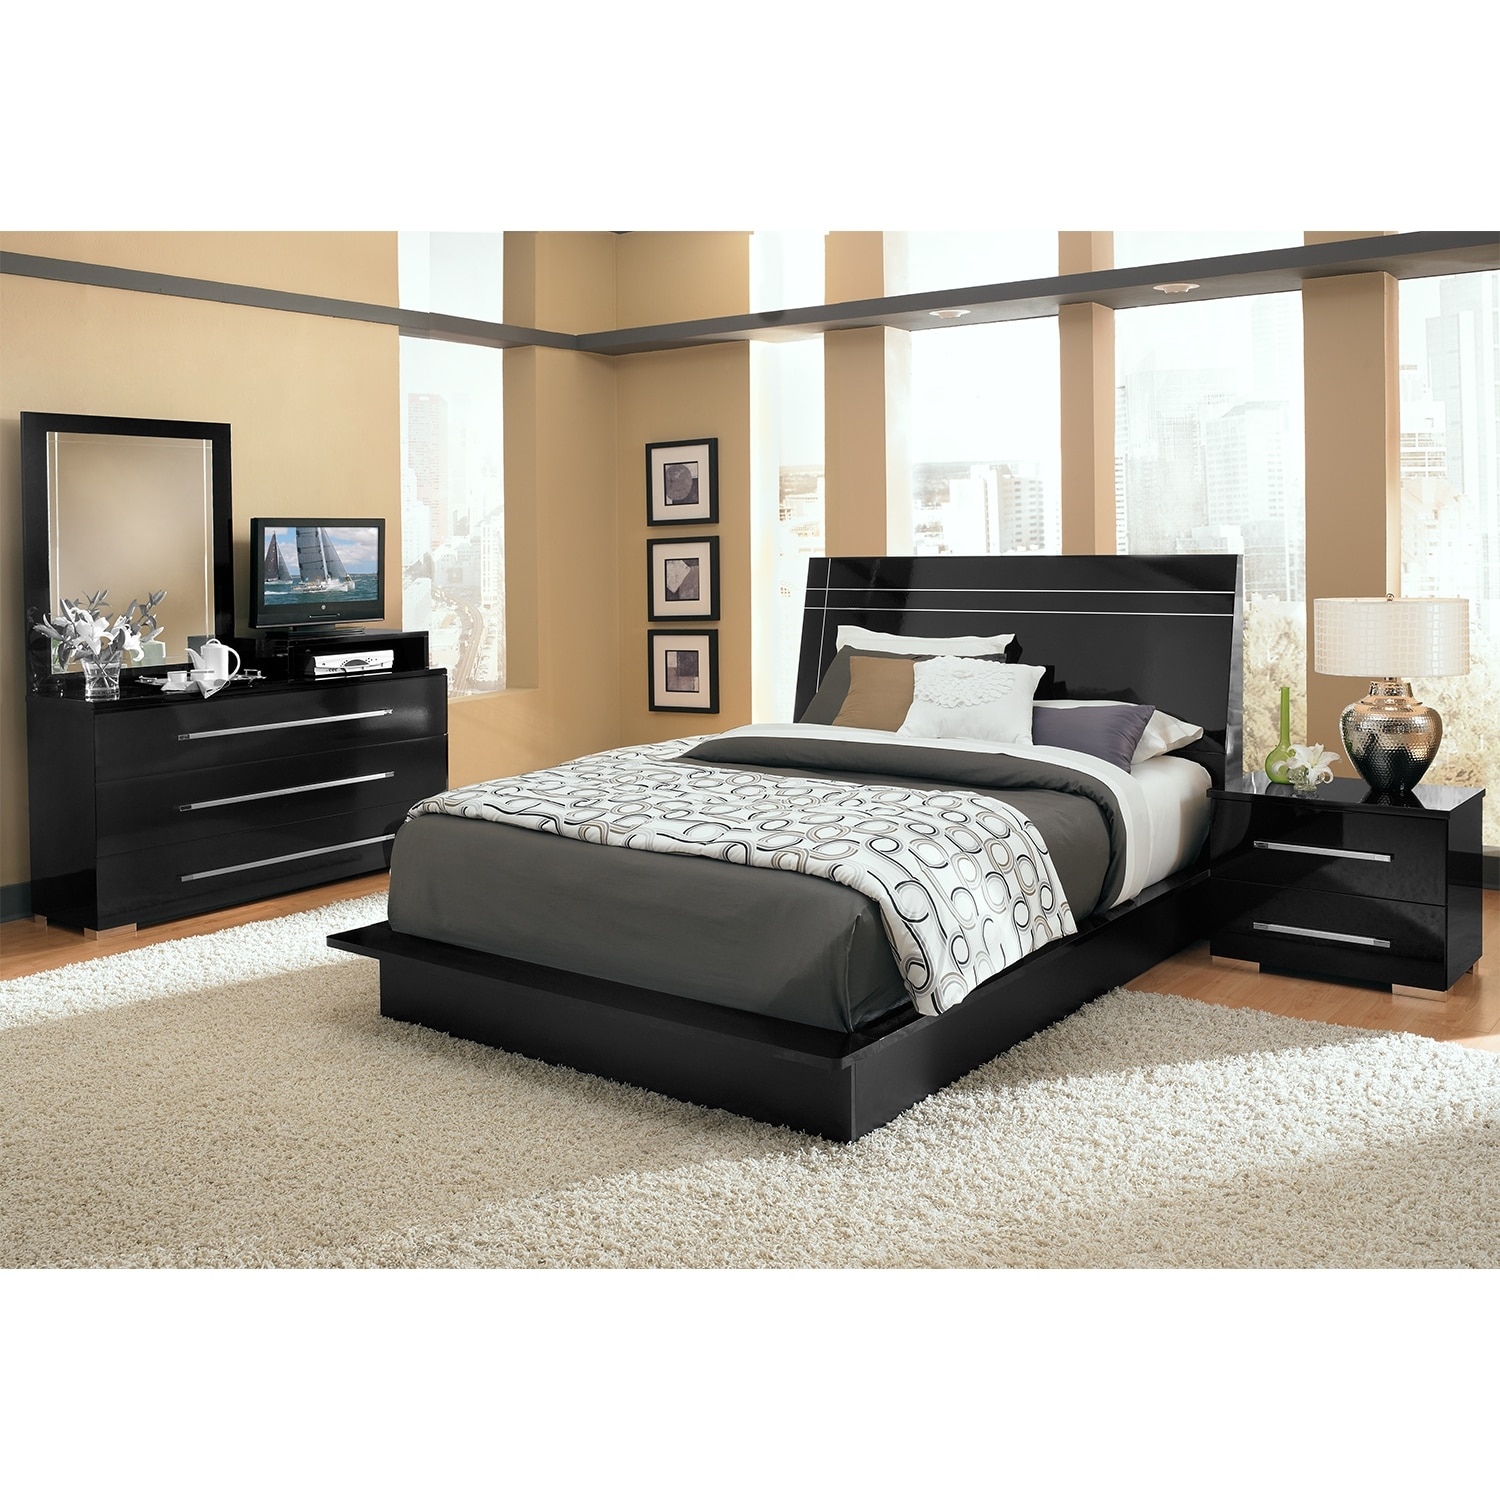 black bedroom sets king. Click to change image  Dimora 6 Piece King Panel Bedroom Set with Media Dresser Black